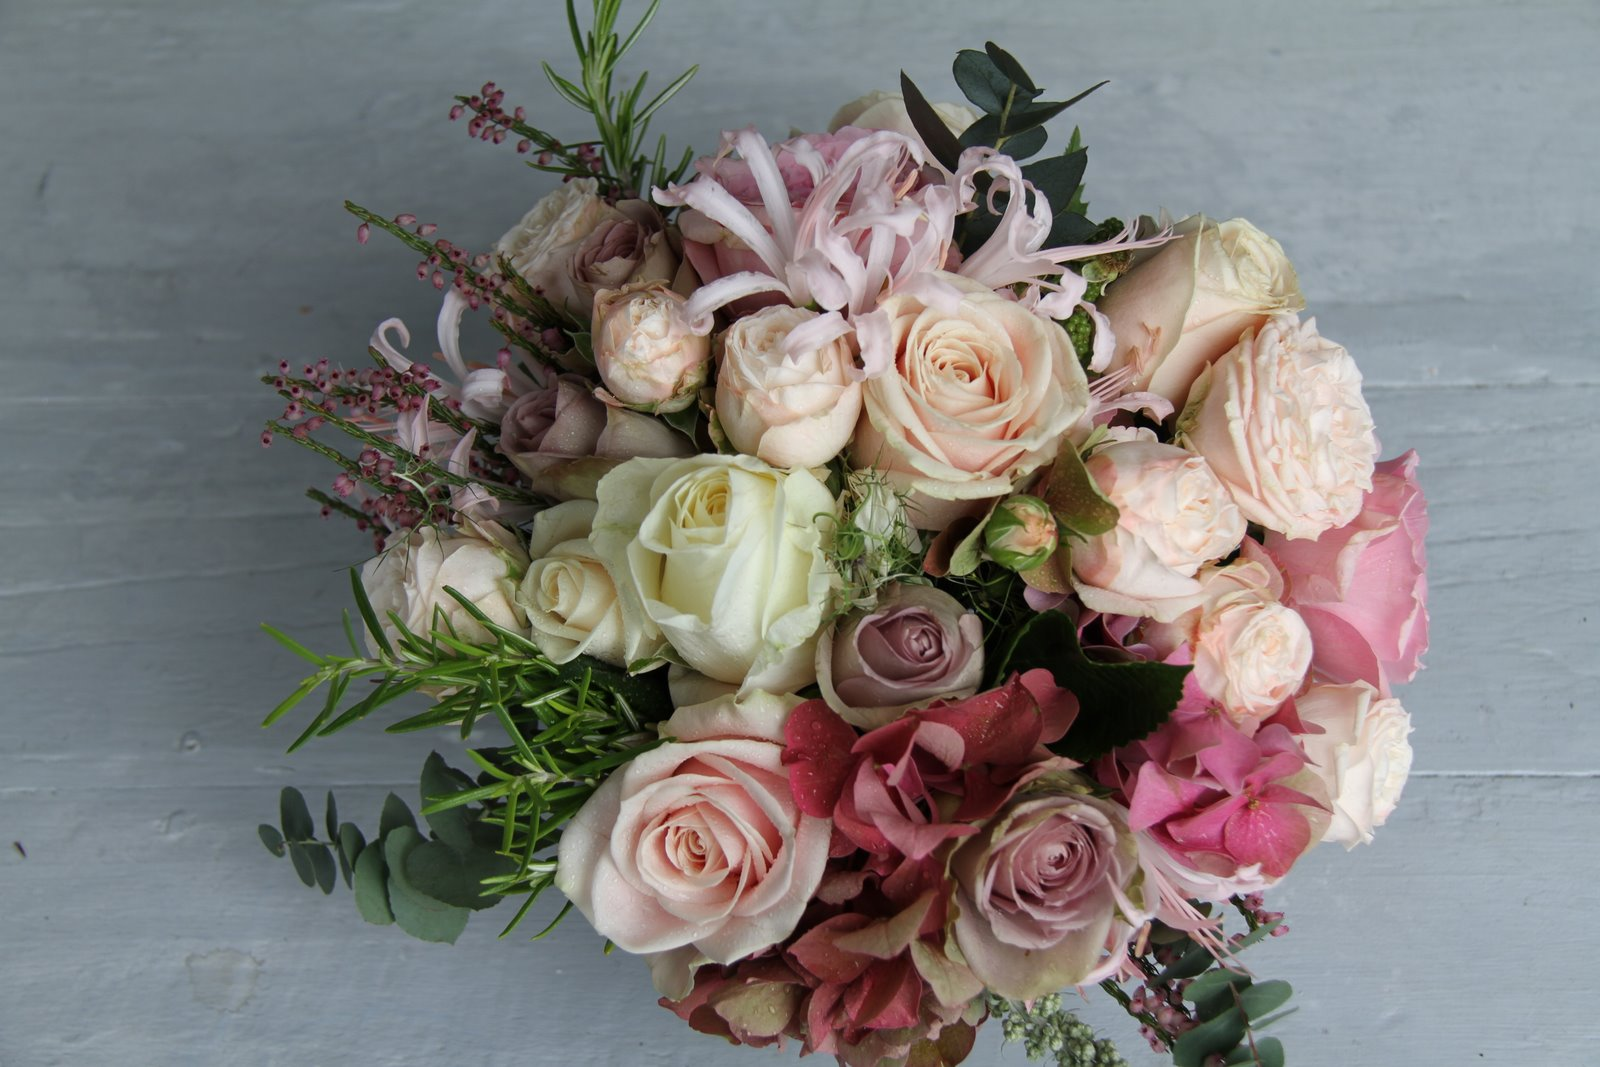 The flower magician vintage romance wedding bouquet english garden roses and herbs - Garden rose bouquet ...